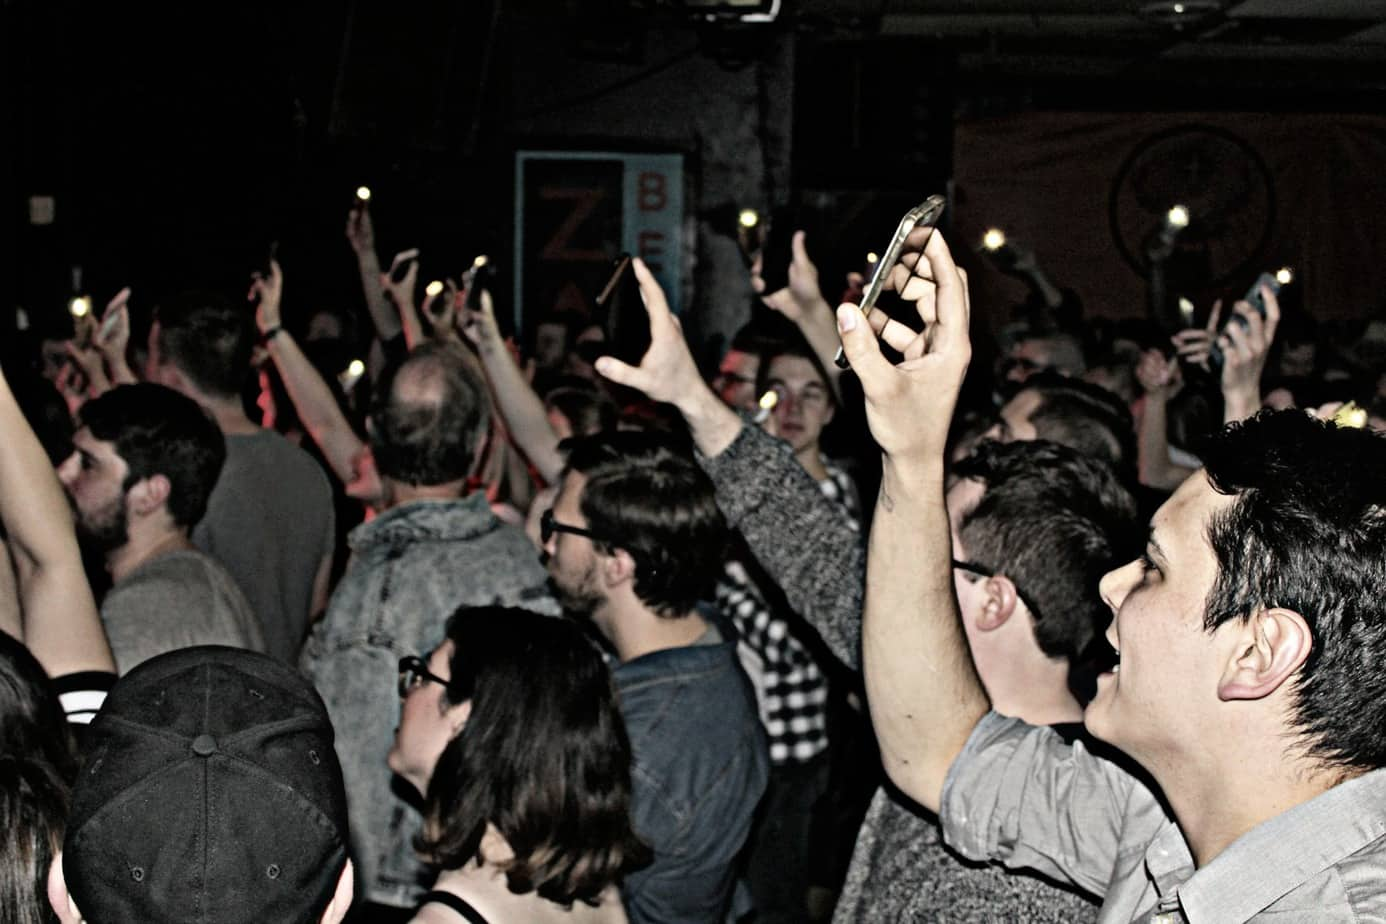 crowd at Zaphods for the Honest Heart Collective